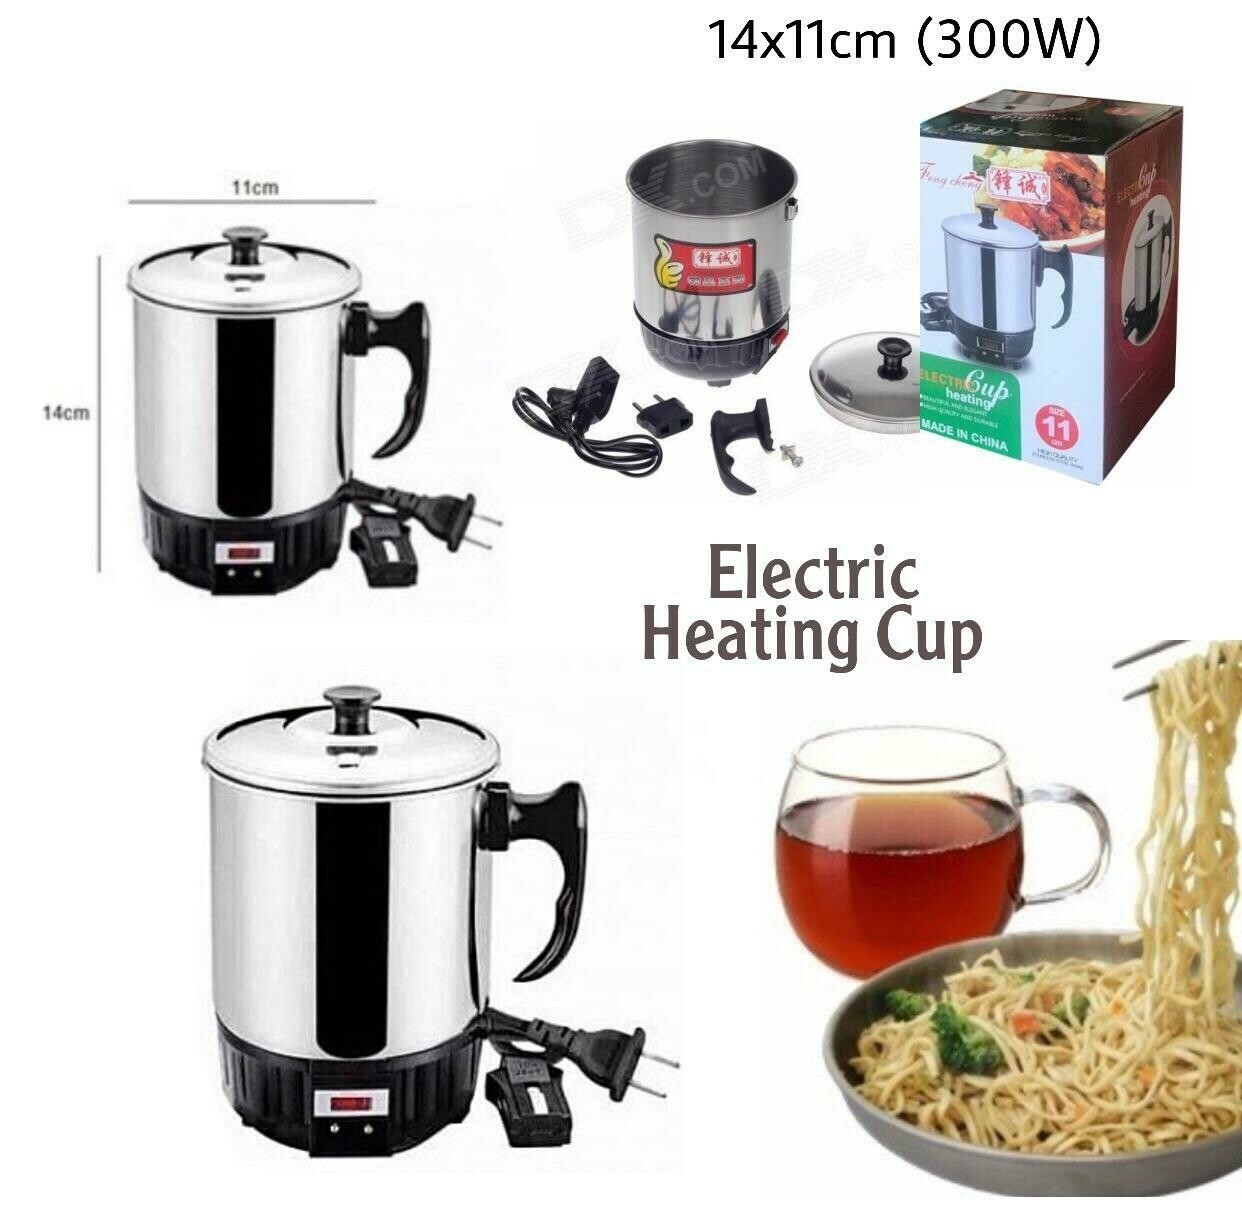 Electric Heating Cup